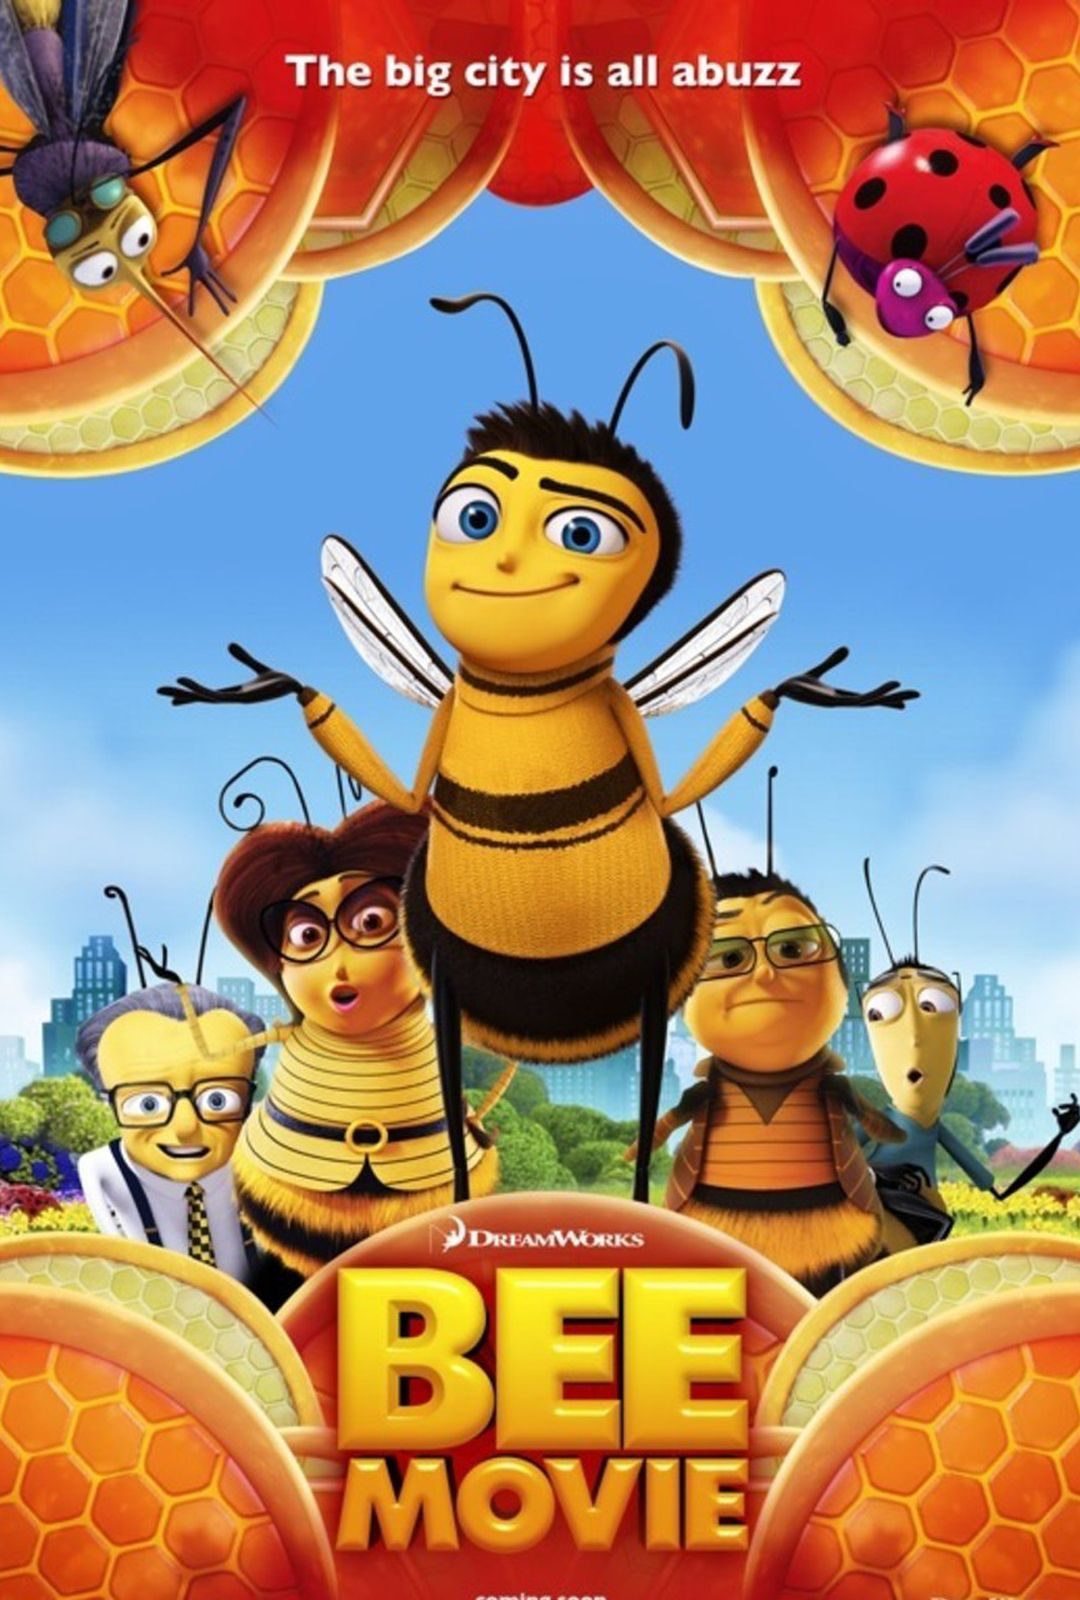 Bee Movie A 2007 American computer animated family comedy